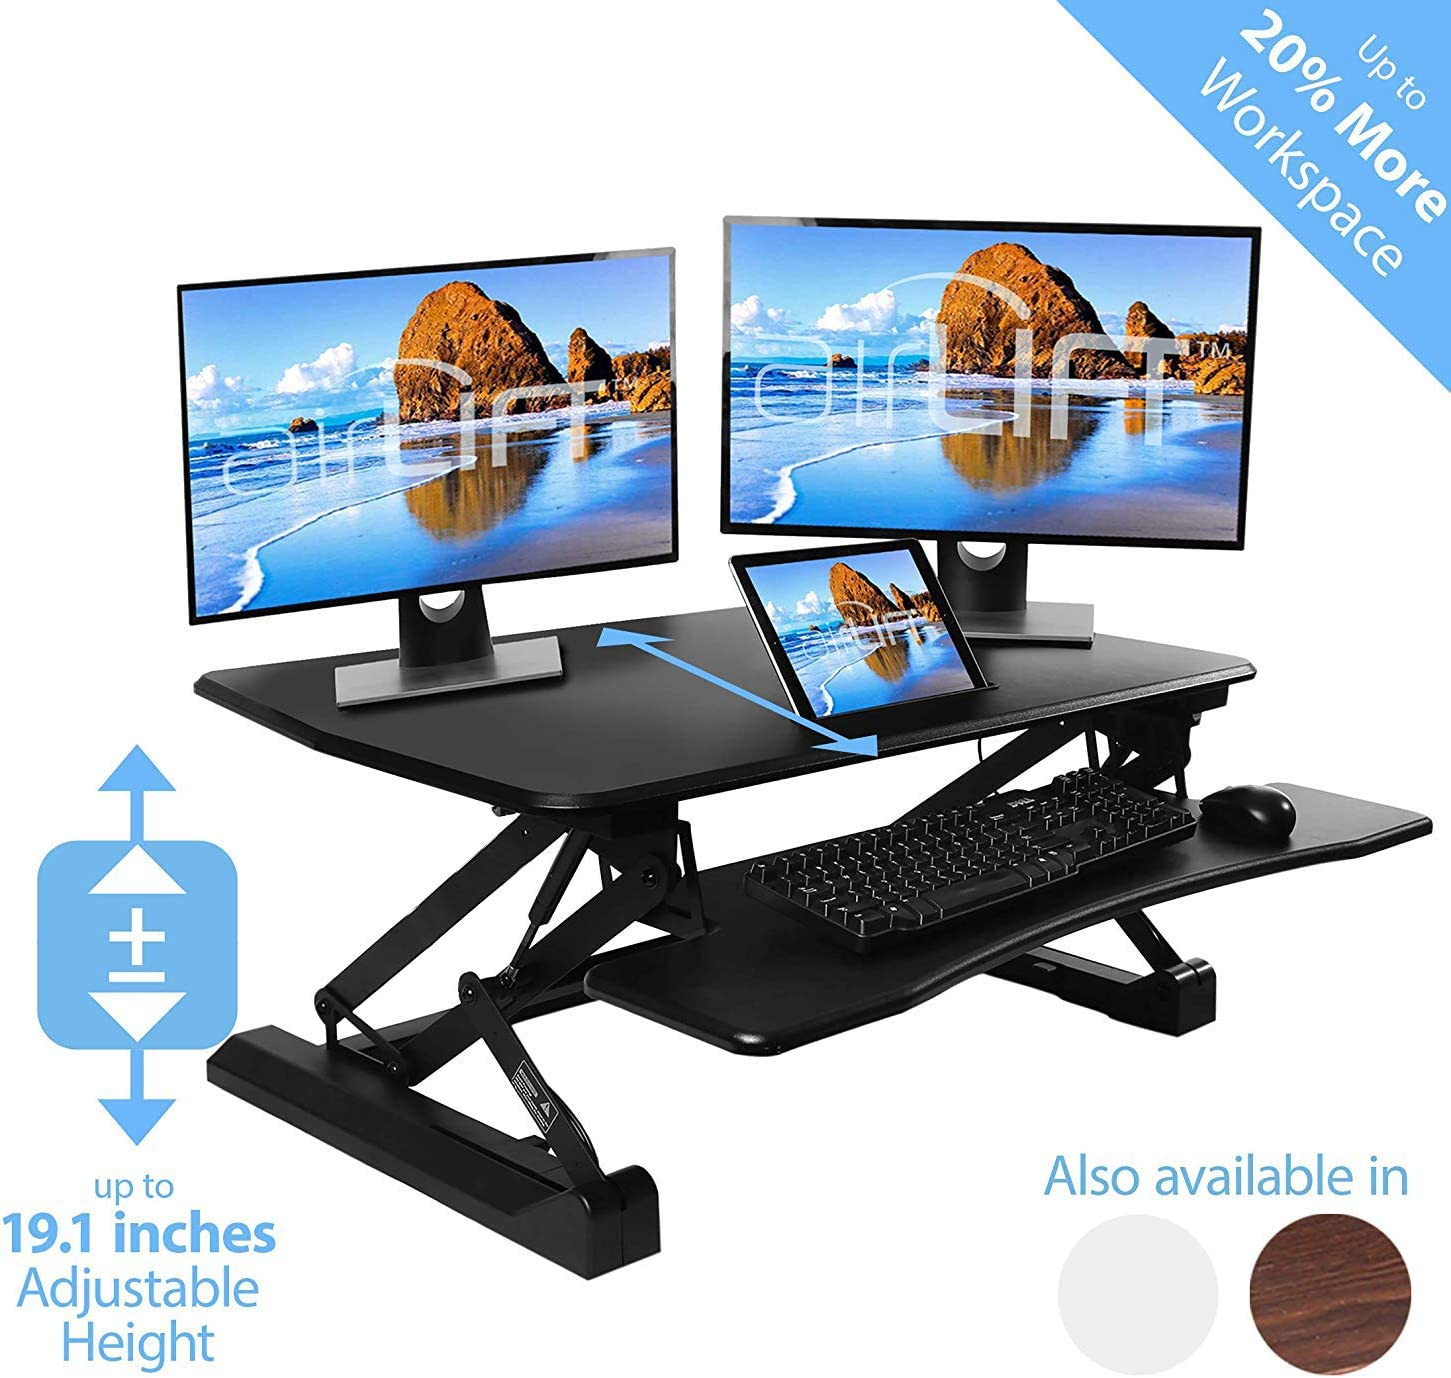 - Amazon.com: Seville Classics AirLIFT Height Adjustable Stand Up